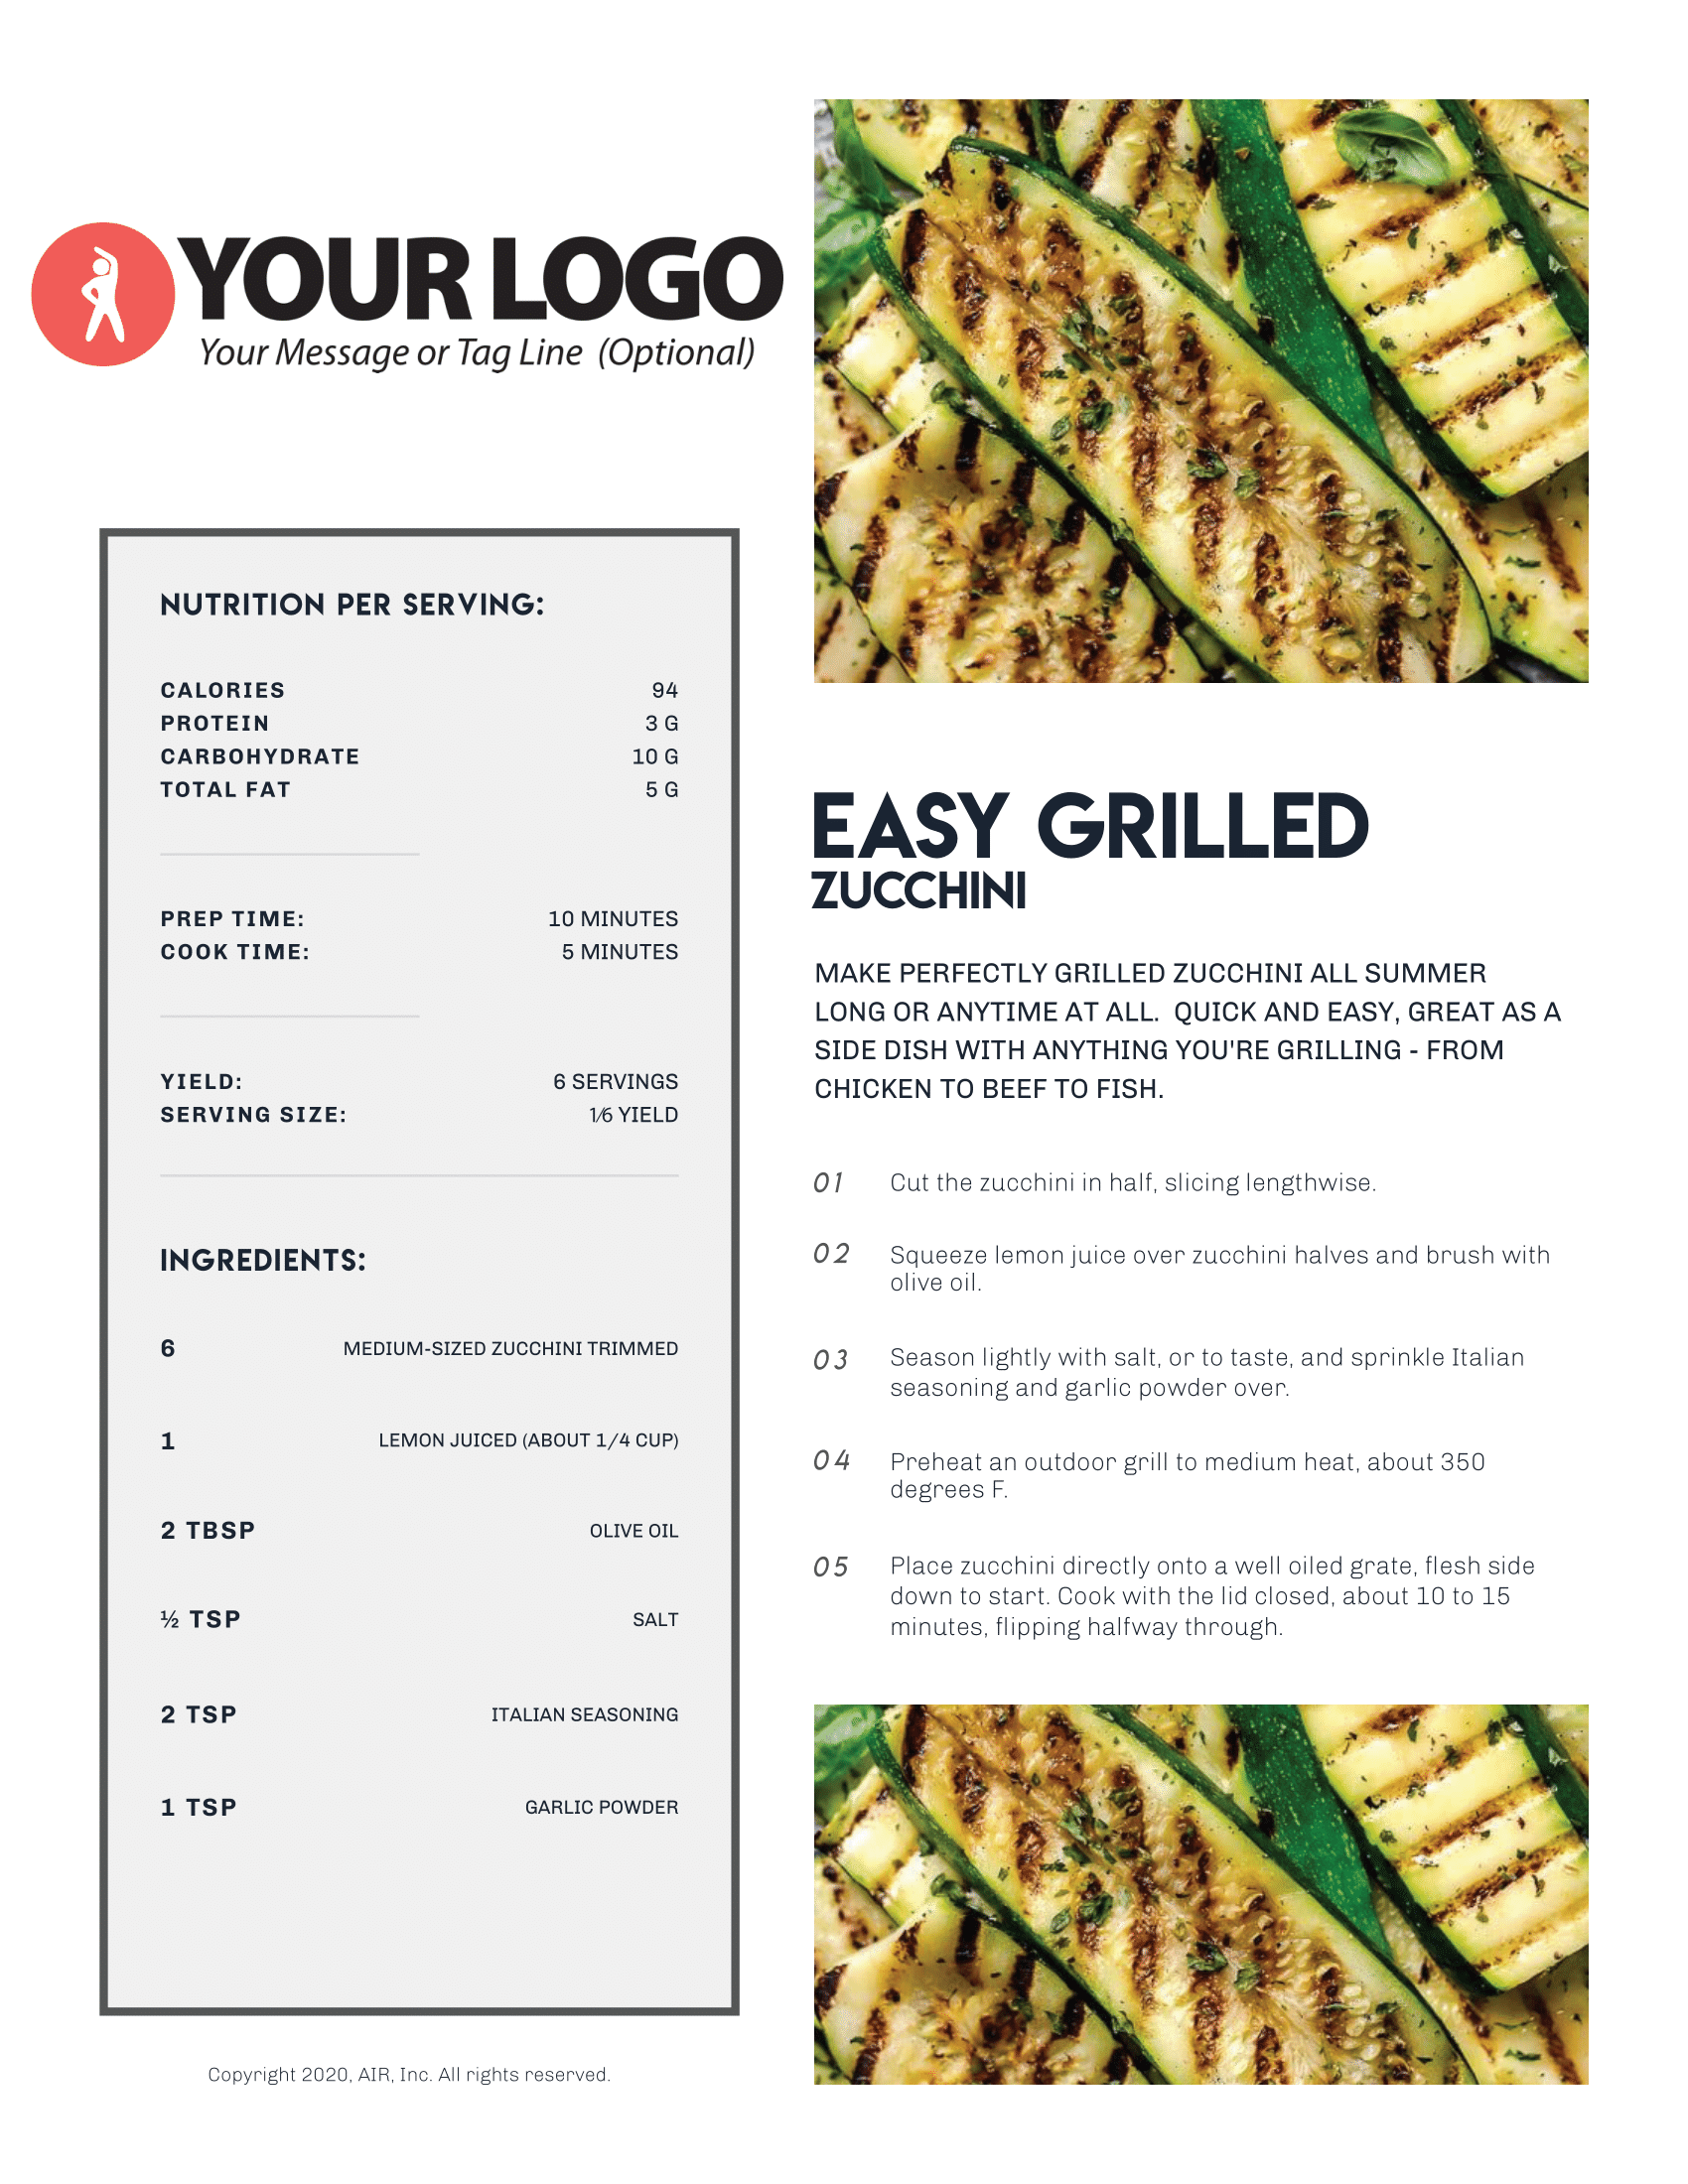 404a_Easy_Grilled_Zucchini-1